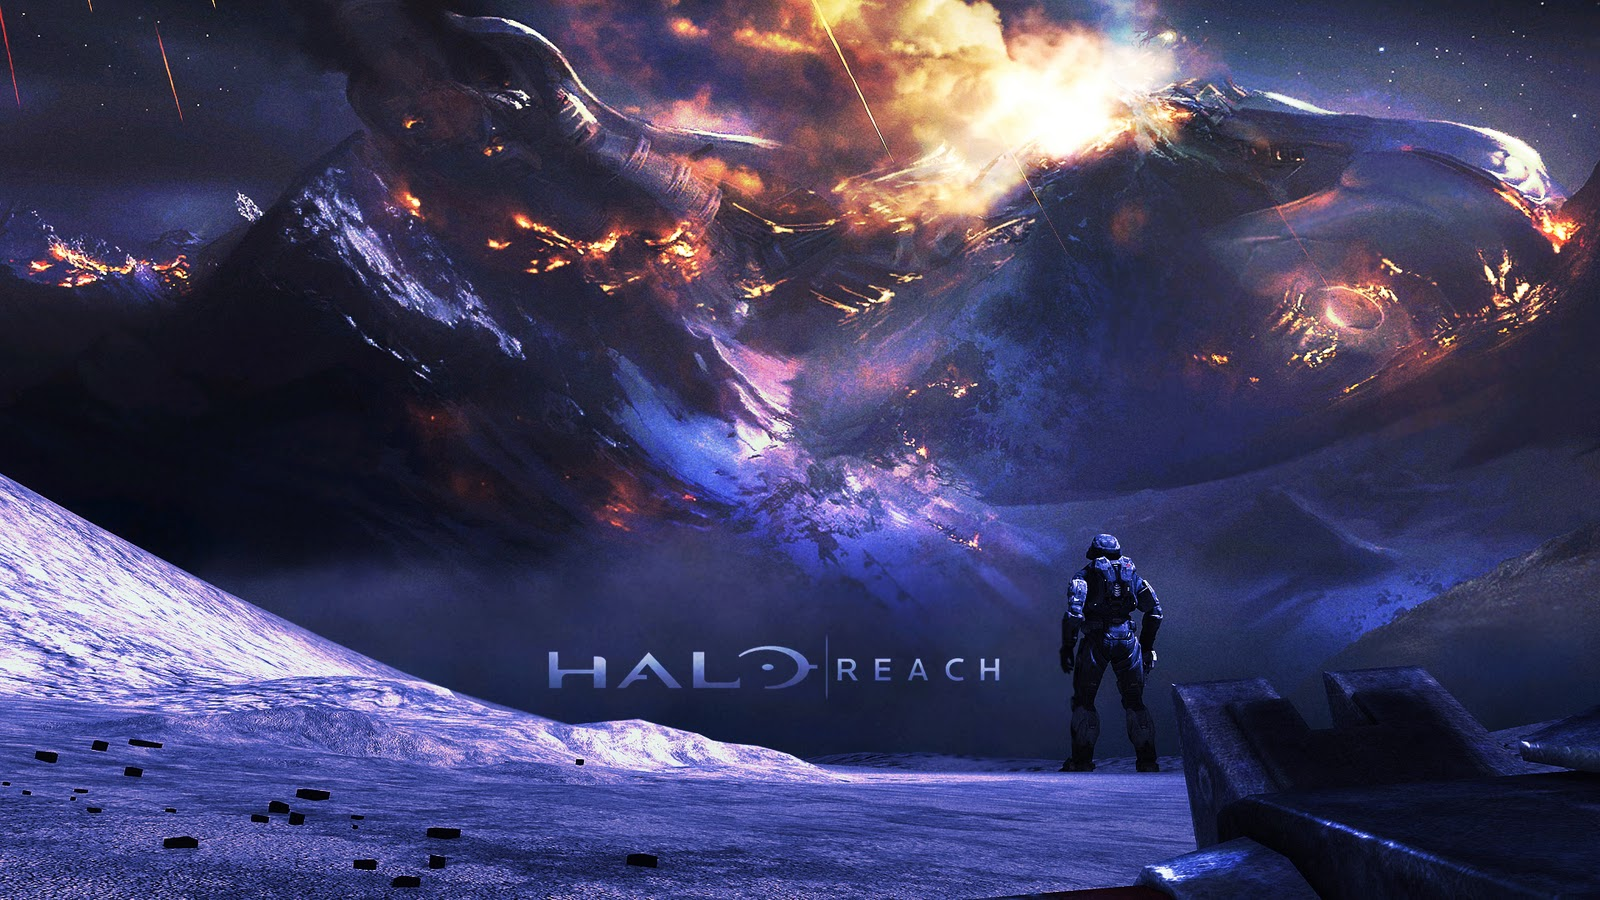 Wolfenstein Hd Wallpapers Halo Reach Backwards Compatibility Patch Greatly Improves